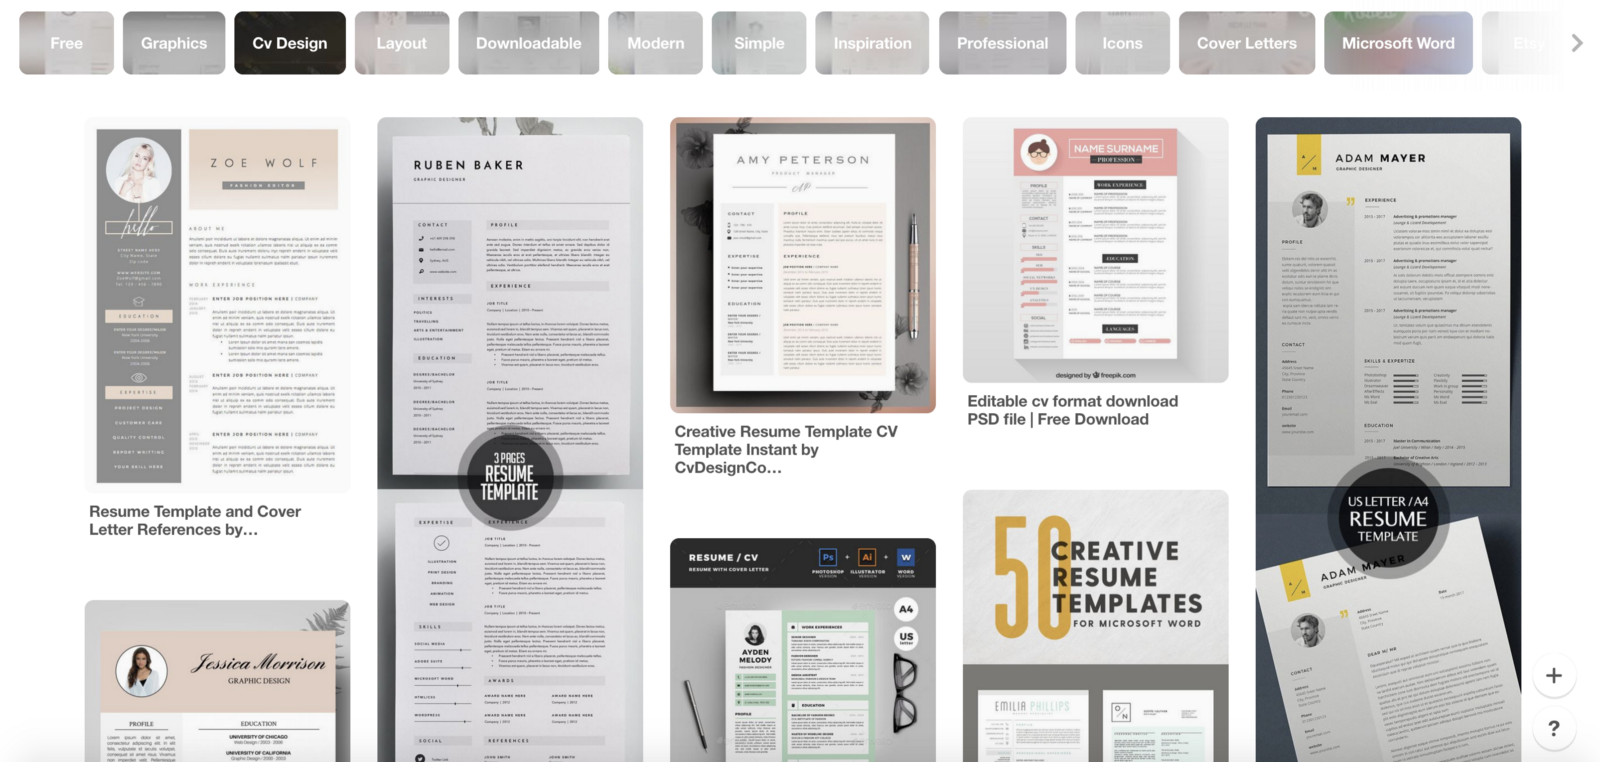 1 You Are Applying For A Designer Position Dont Use Free Resume Template